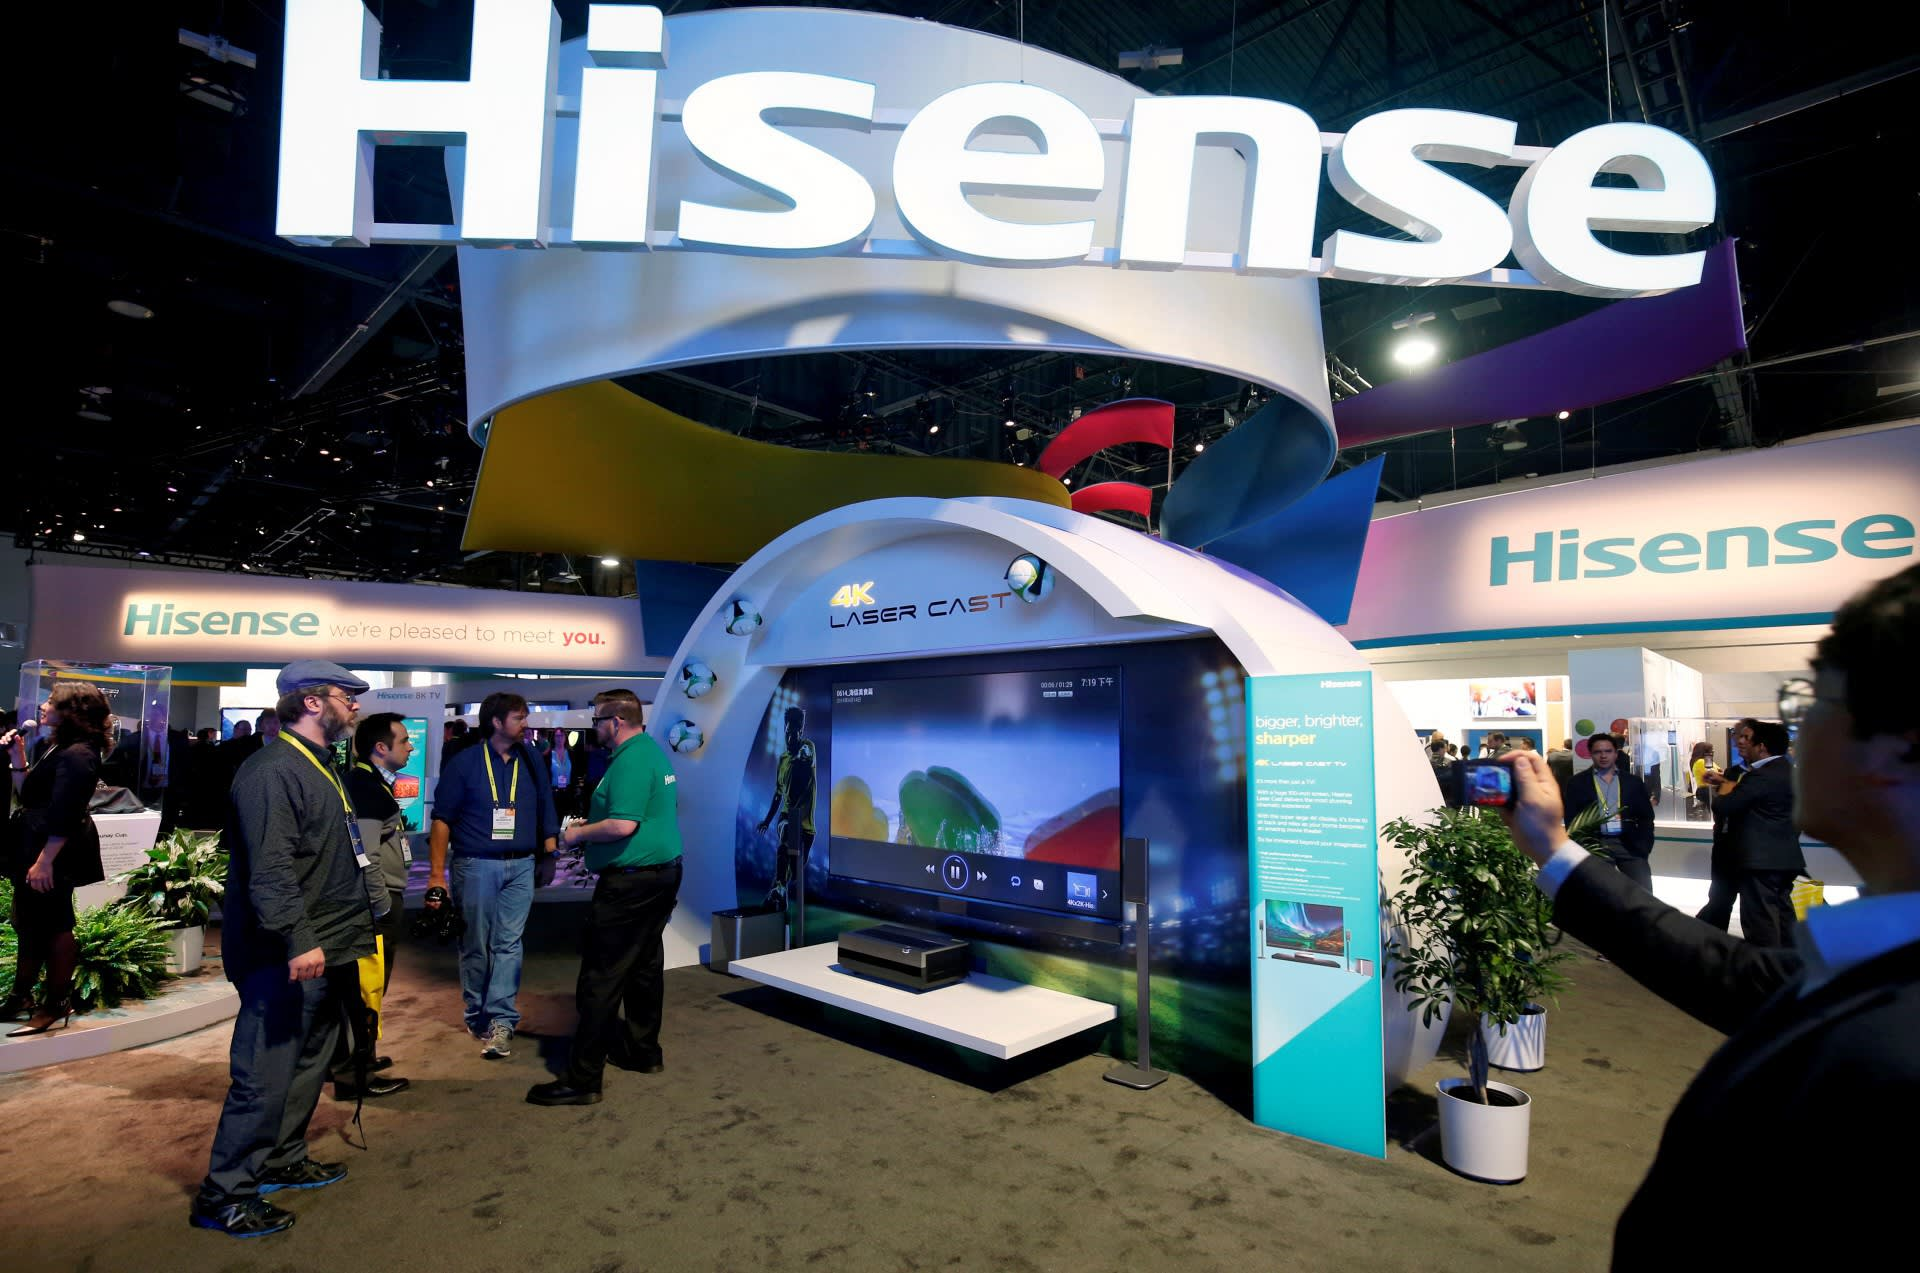 Hisense Group's new R&D unit will work on image processors and artificial intelligence chips with the aim of adding advanced features to TVs, including connectivity to other appliances.